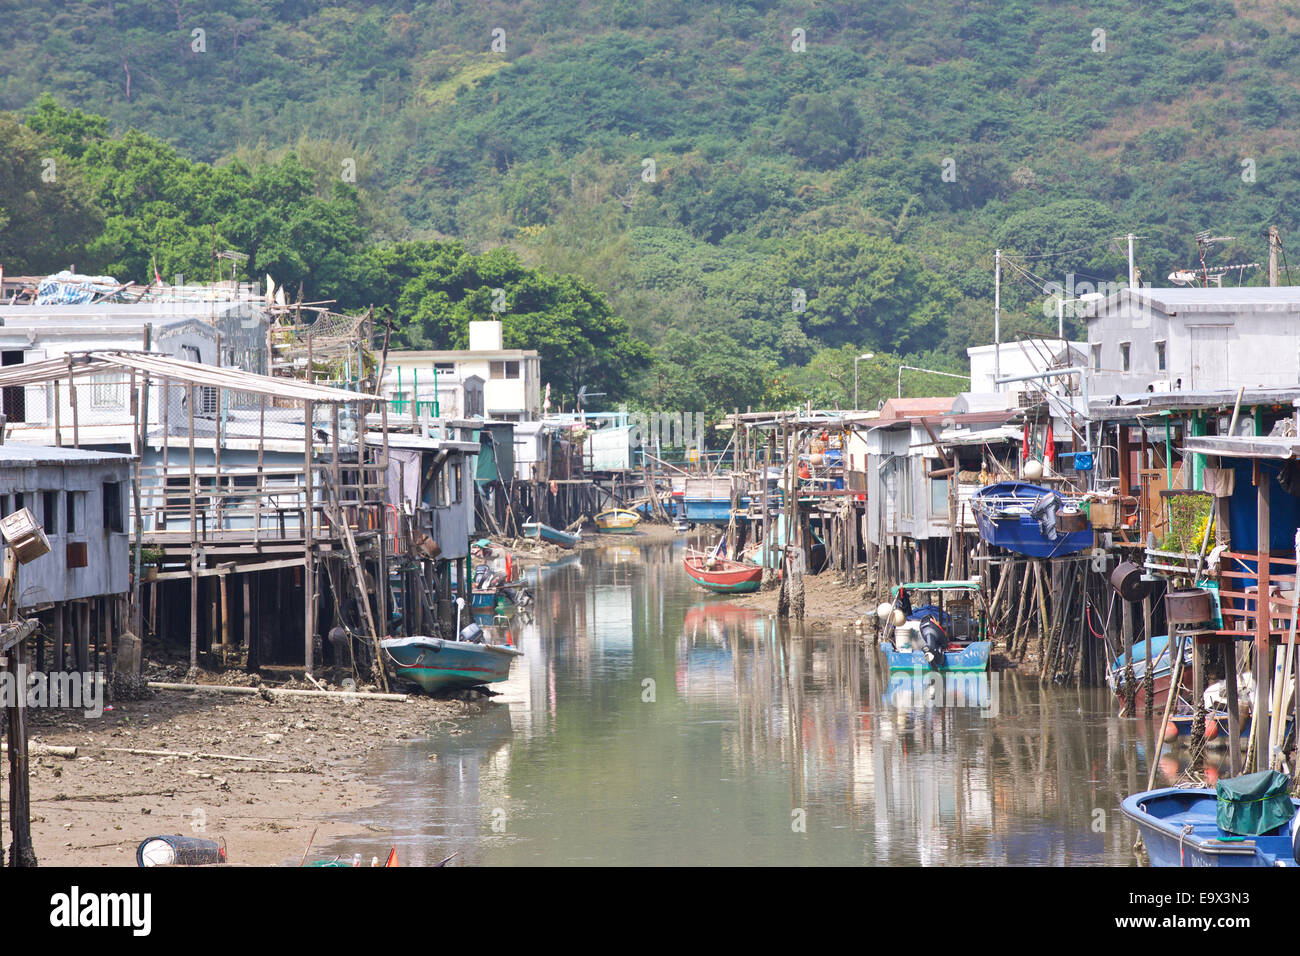 Low Tide In The River By The Many Houses On Stilts In Tai O, Lantau Island, Hong Kong. - Stock Image